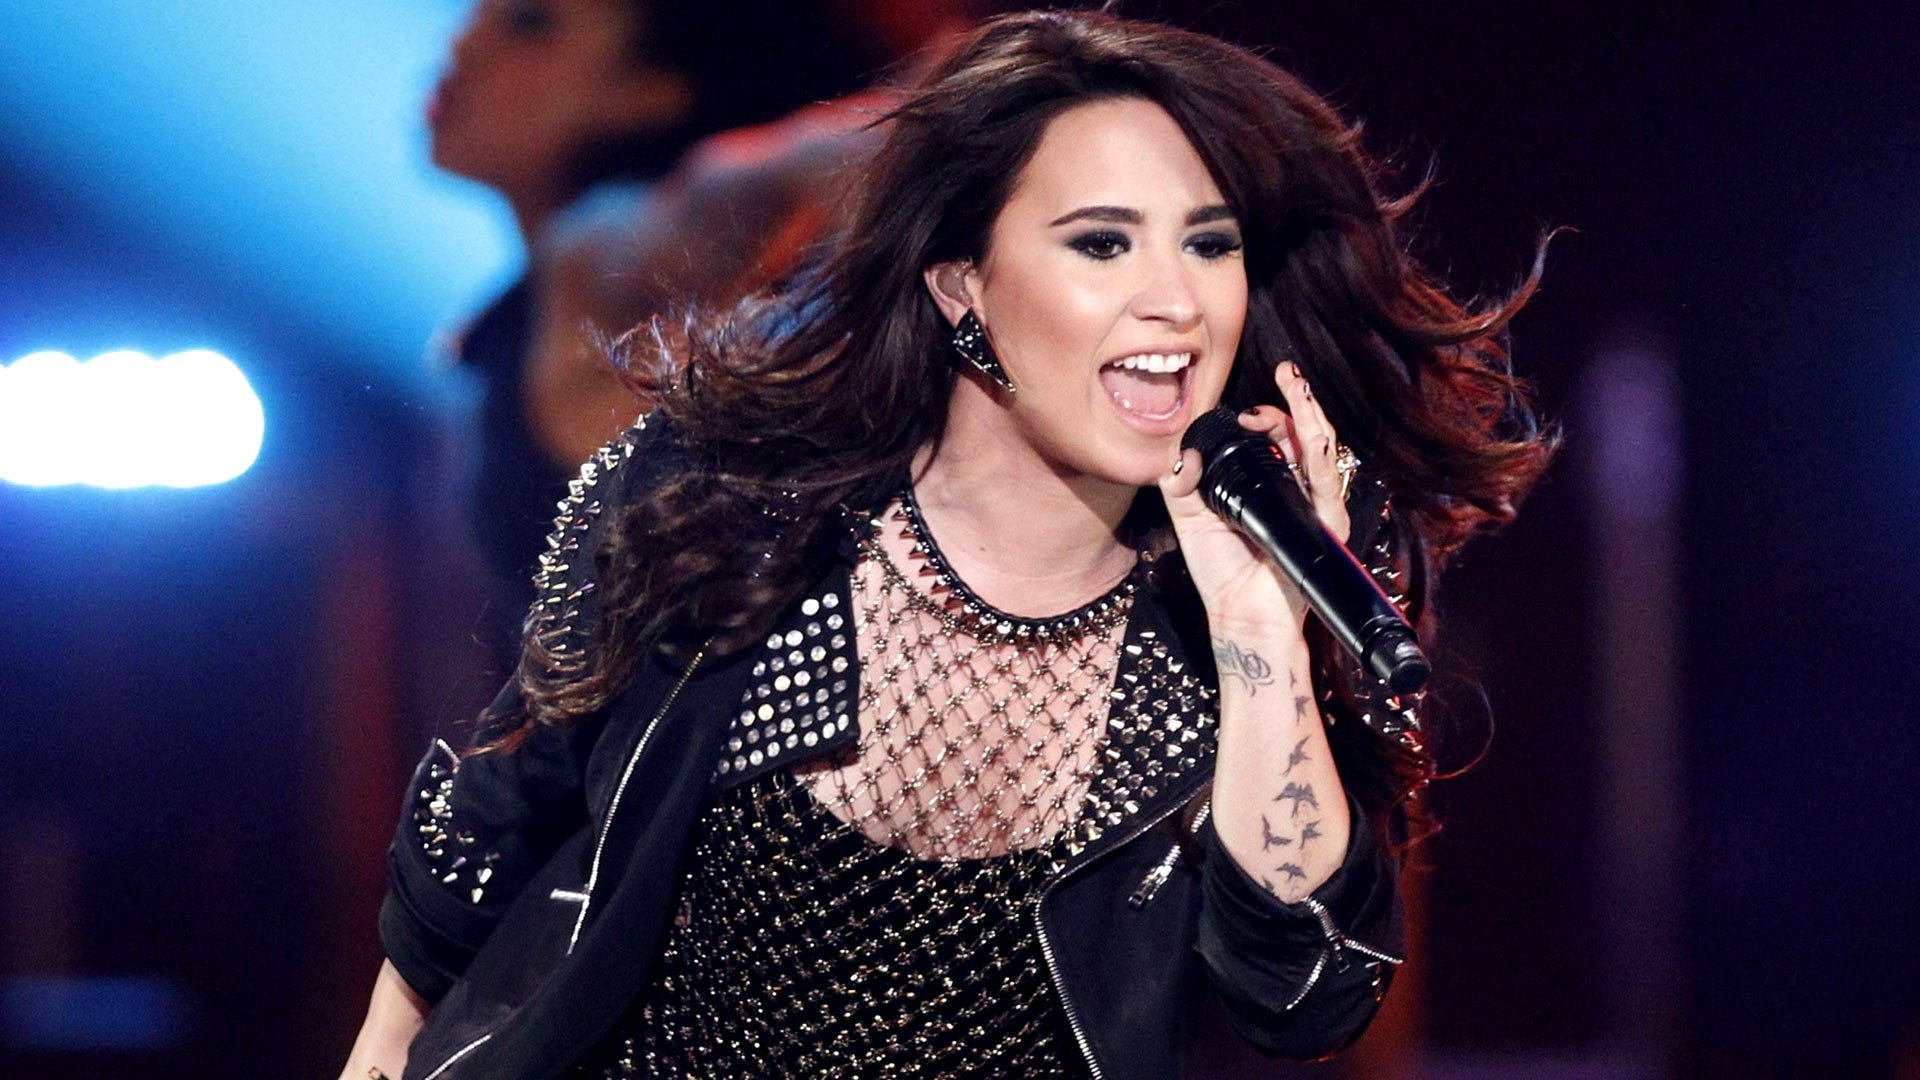 Demi Lovato Wallpapers Images Photos Pictures Backgrounds 1920x1080